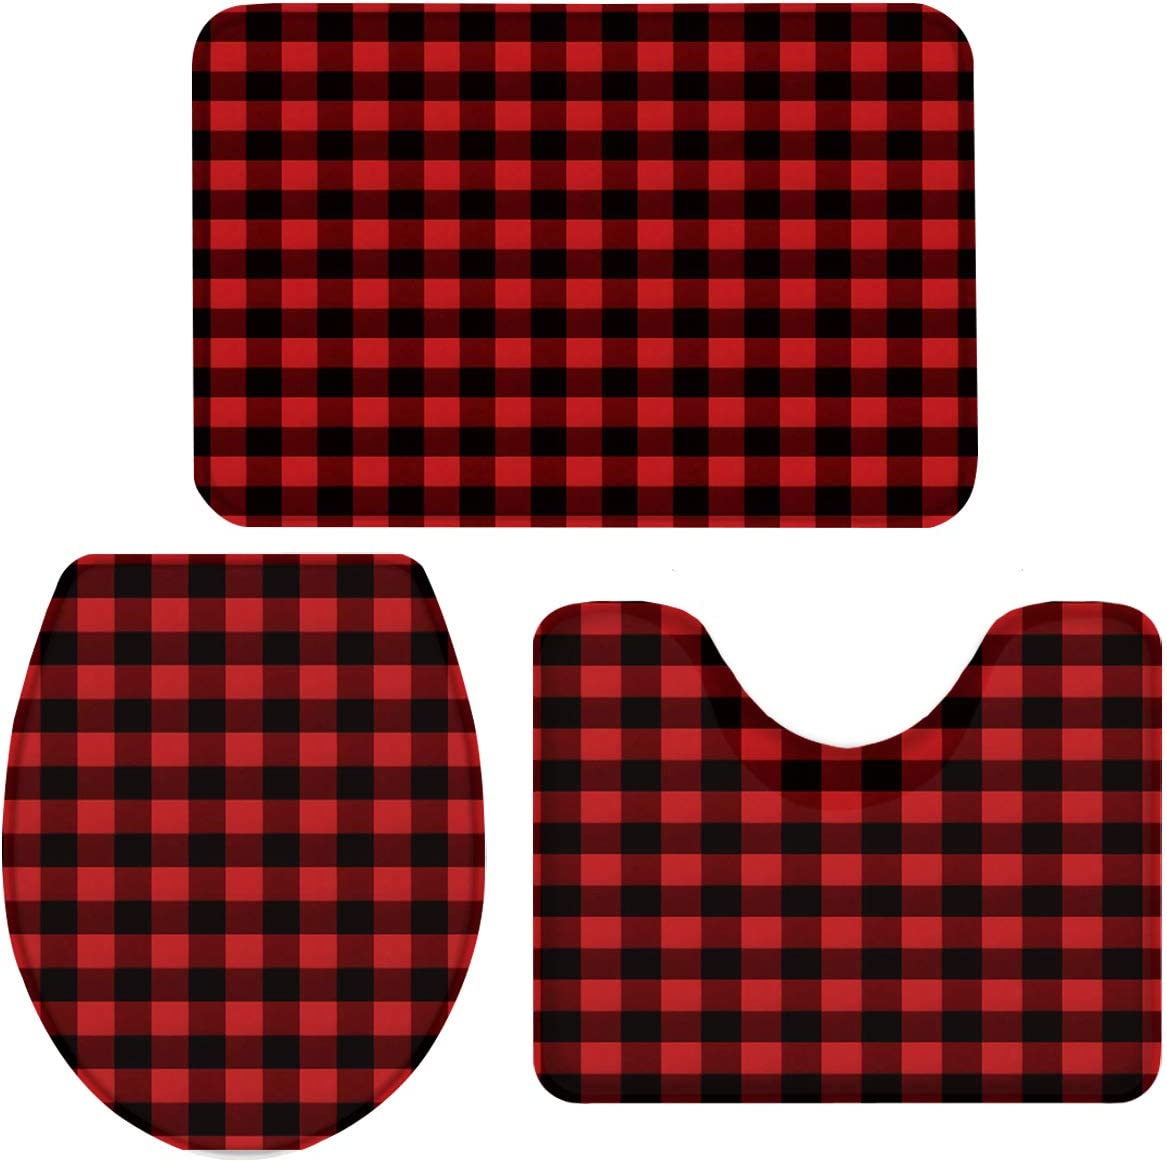 3 Pieces Bathroom Rugs and Mats Sets, Non Slip Water Absorbent Bath Rug, Toilet Seat/Lid Cover, U-Shaped Toilet Mat, Home Decor Doormats - Red Black Buffalo